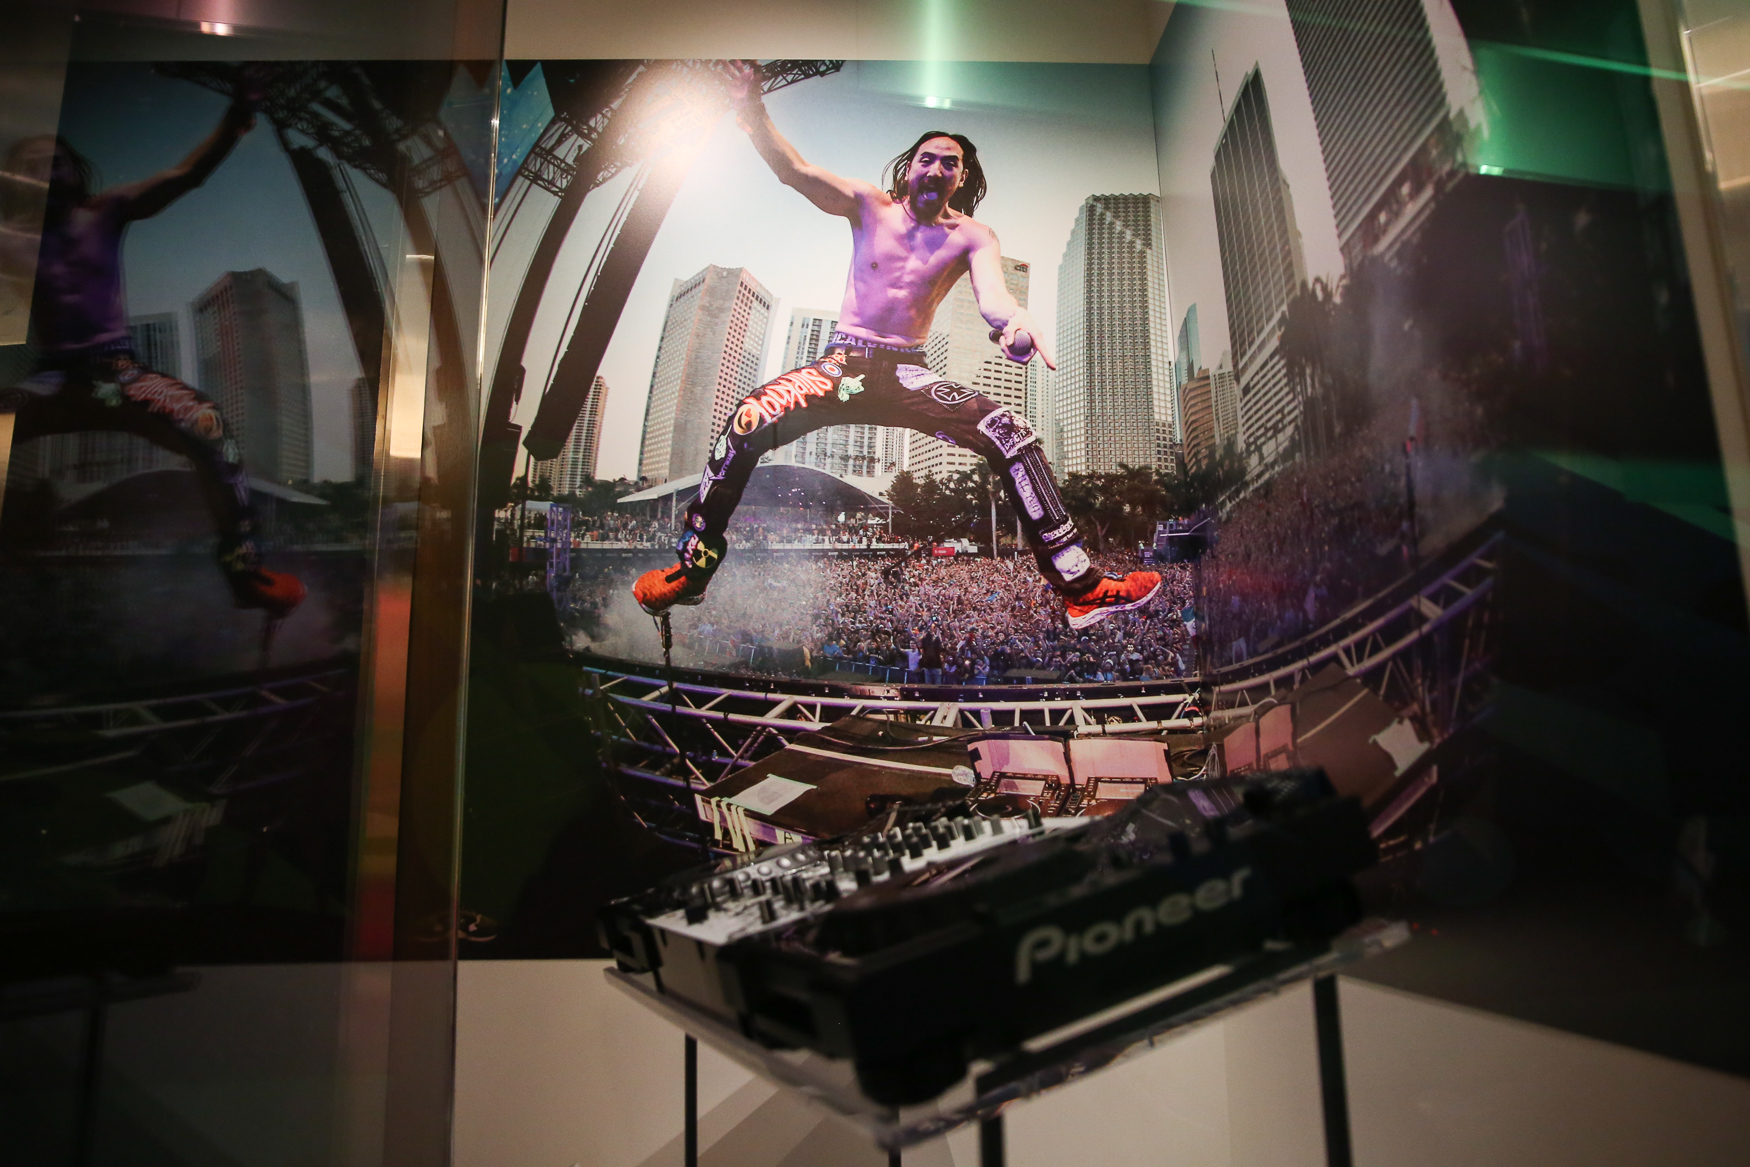 DJ Steve Aoki's turntable and soundboard also have a place in music history now. (Amanda Andrade-Rhoades/DC Refined)<p></p>